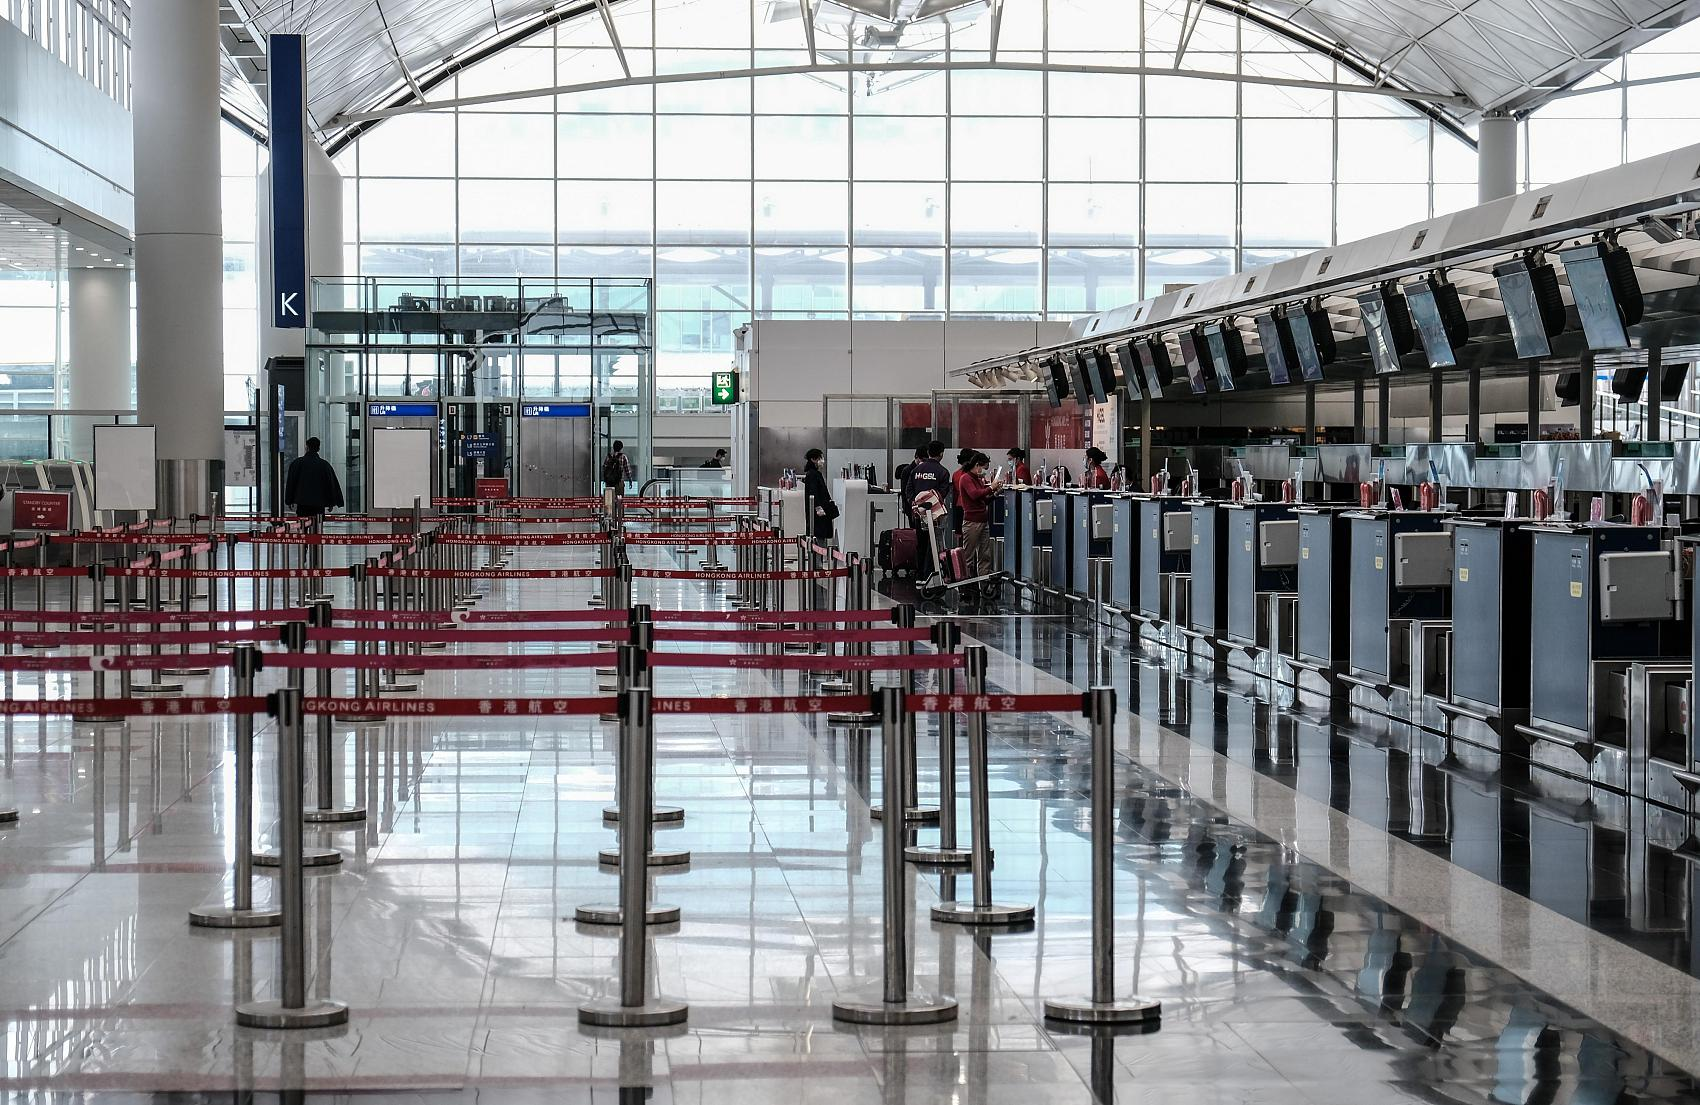 Hong Kong airport's passenger volume drops 18.9 pct in fiscal year 2019/20